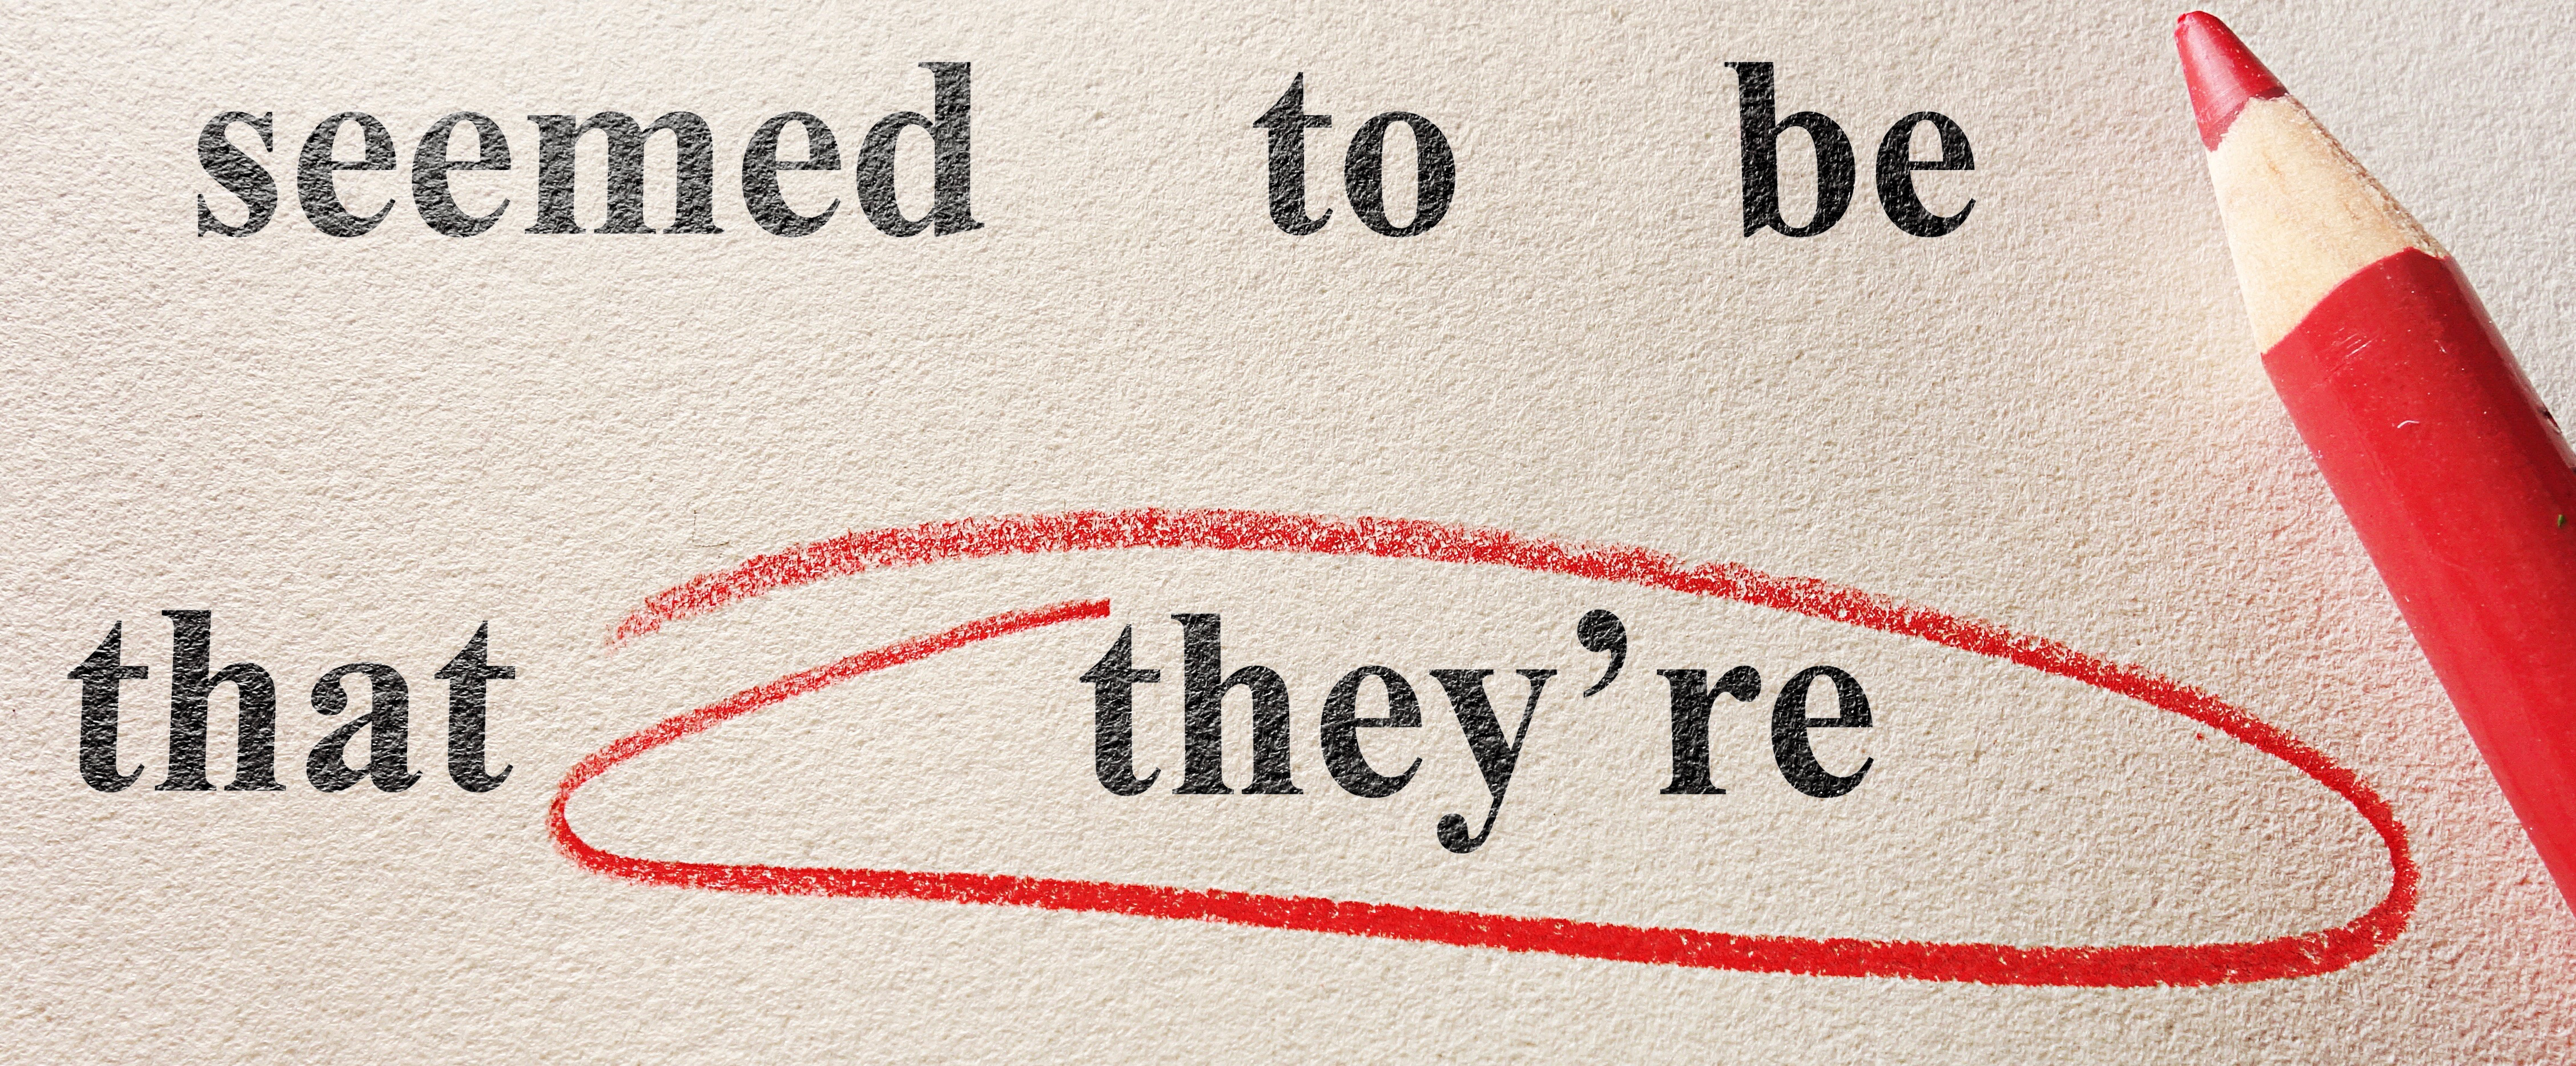 Grammar Police: 30 of the Most Common Grammatical Errors We All Need to Stop Making